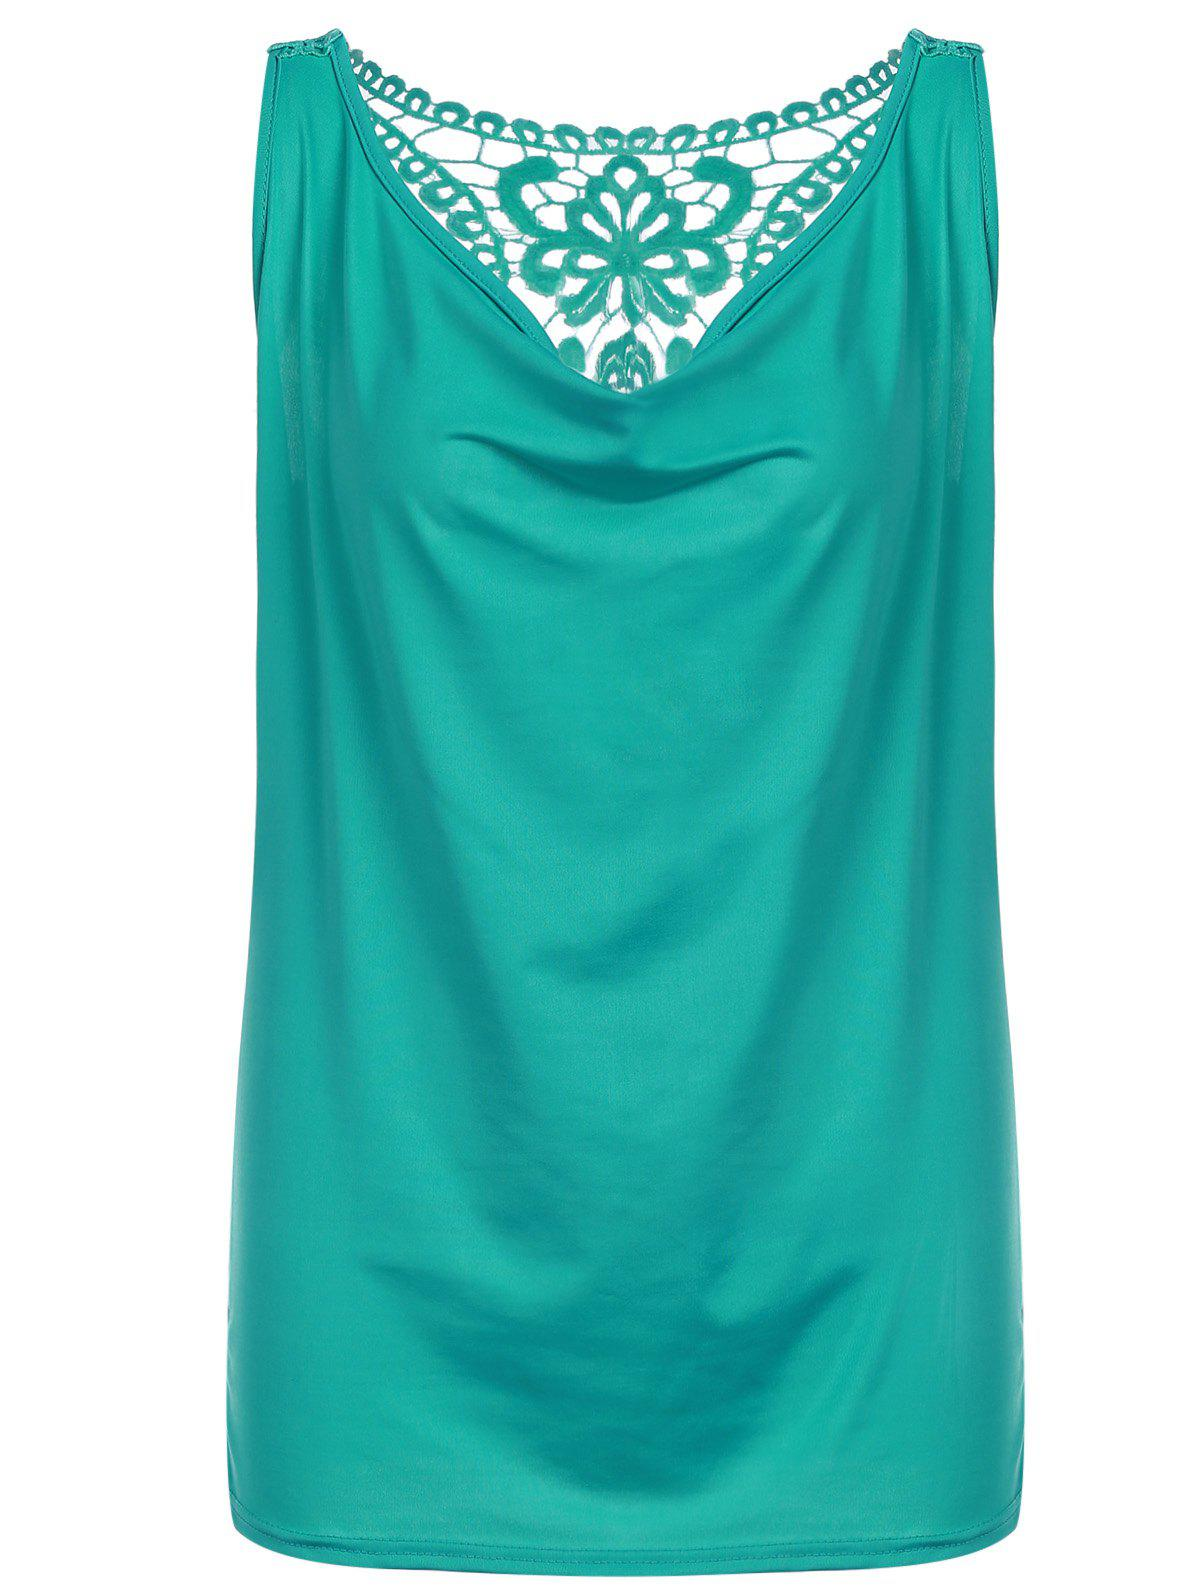 Racerback Lace Trim Tank Top - GREEN M